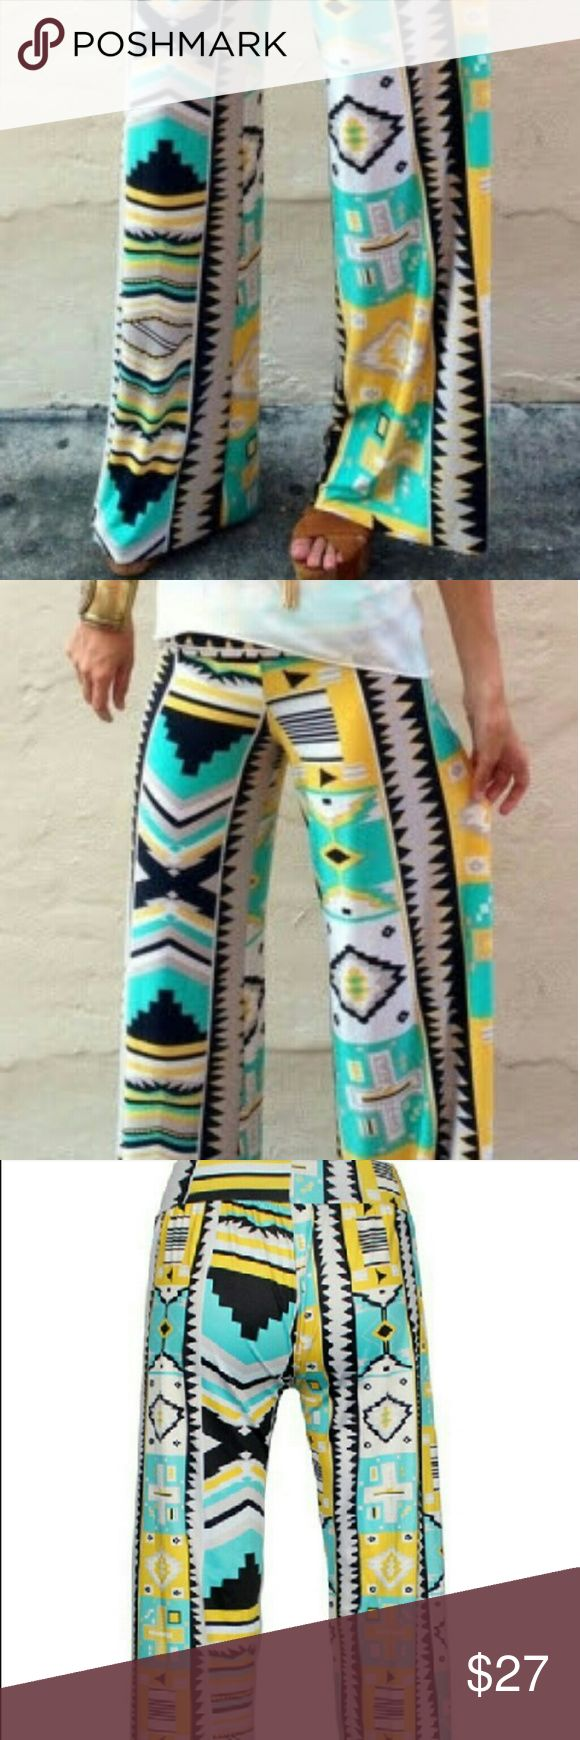 Palazzo Pants GOod EveNing Clothing💖💖💋💋💖 These Palazzo Pants will help you dazzle any Pharoah! This signature print is exclusively made for women's fashion. Made from a Polyester and Spandex blend.This is one of our best prints and can be worn with a boho top or a crisp button down white shirt and a nice pair of platforms.They are dressy enough for dinner out or a casual day on the beach. Fits women's 0 to 7. Material does stretch. Pants Wide Leg